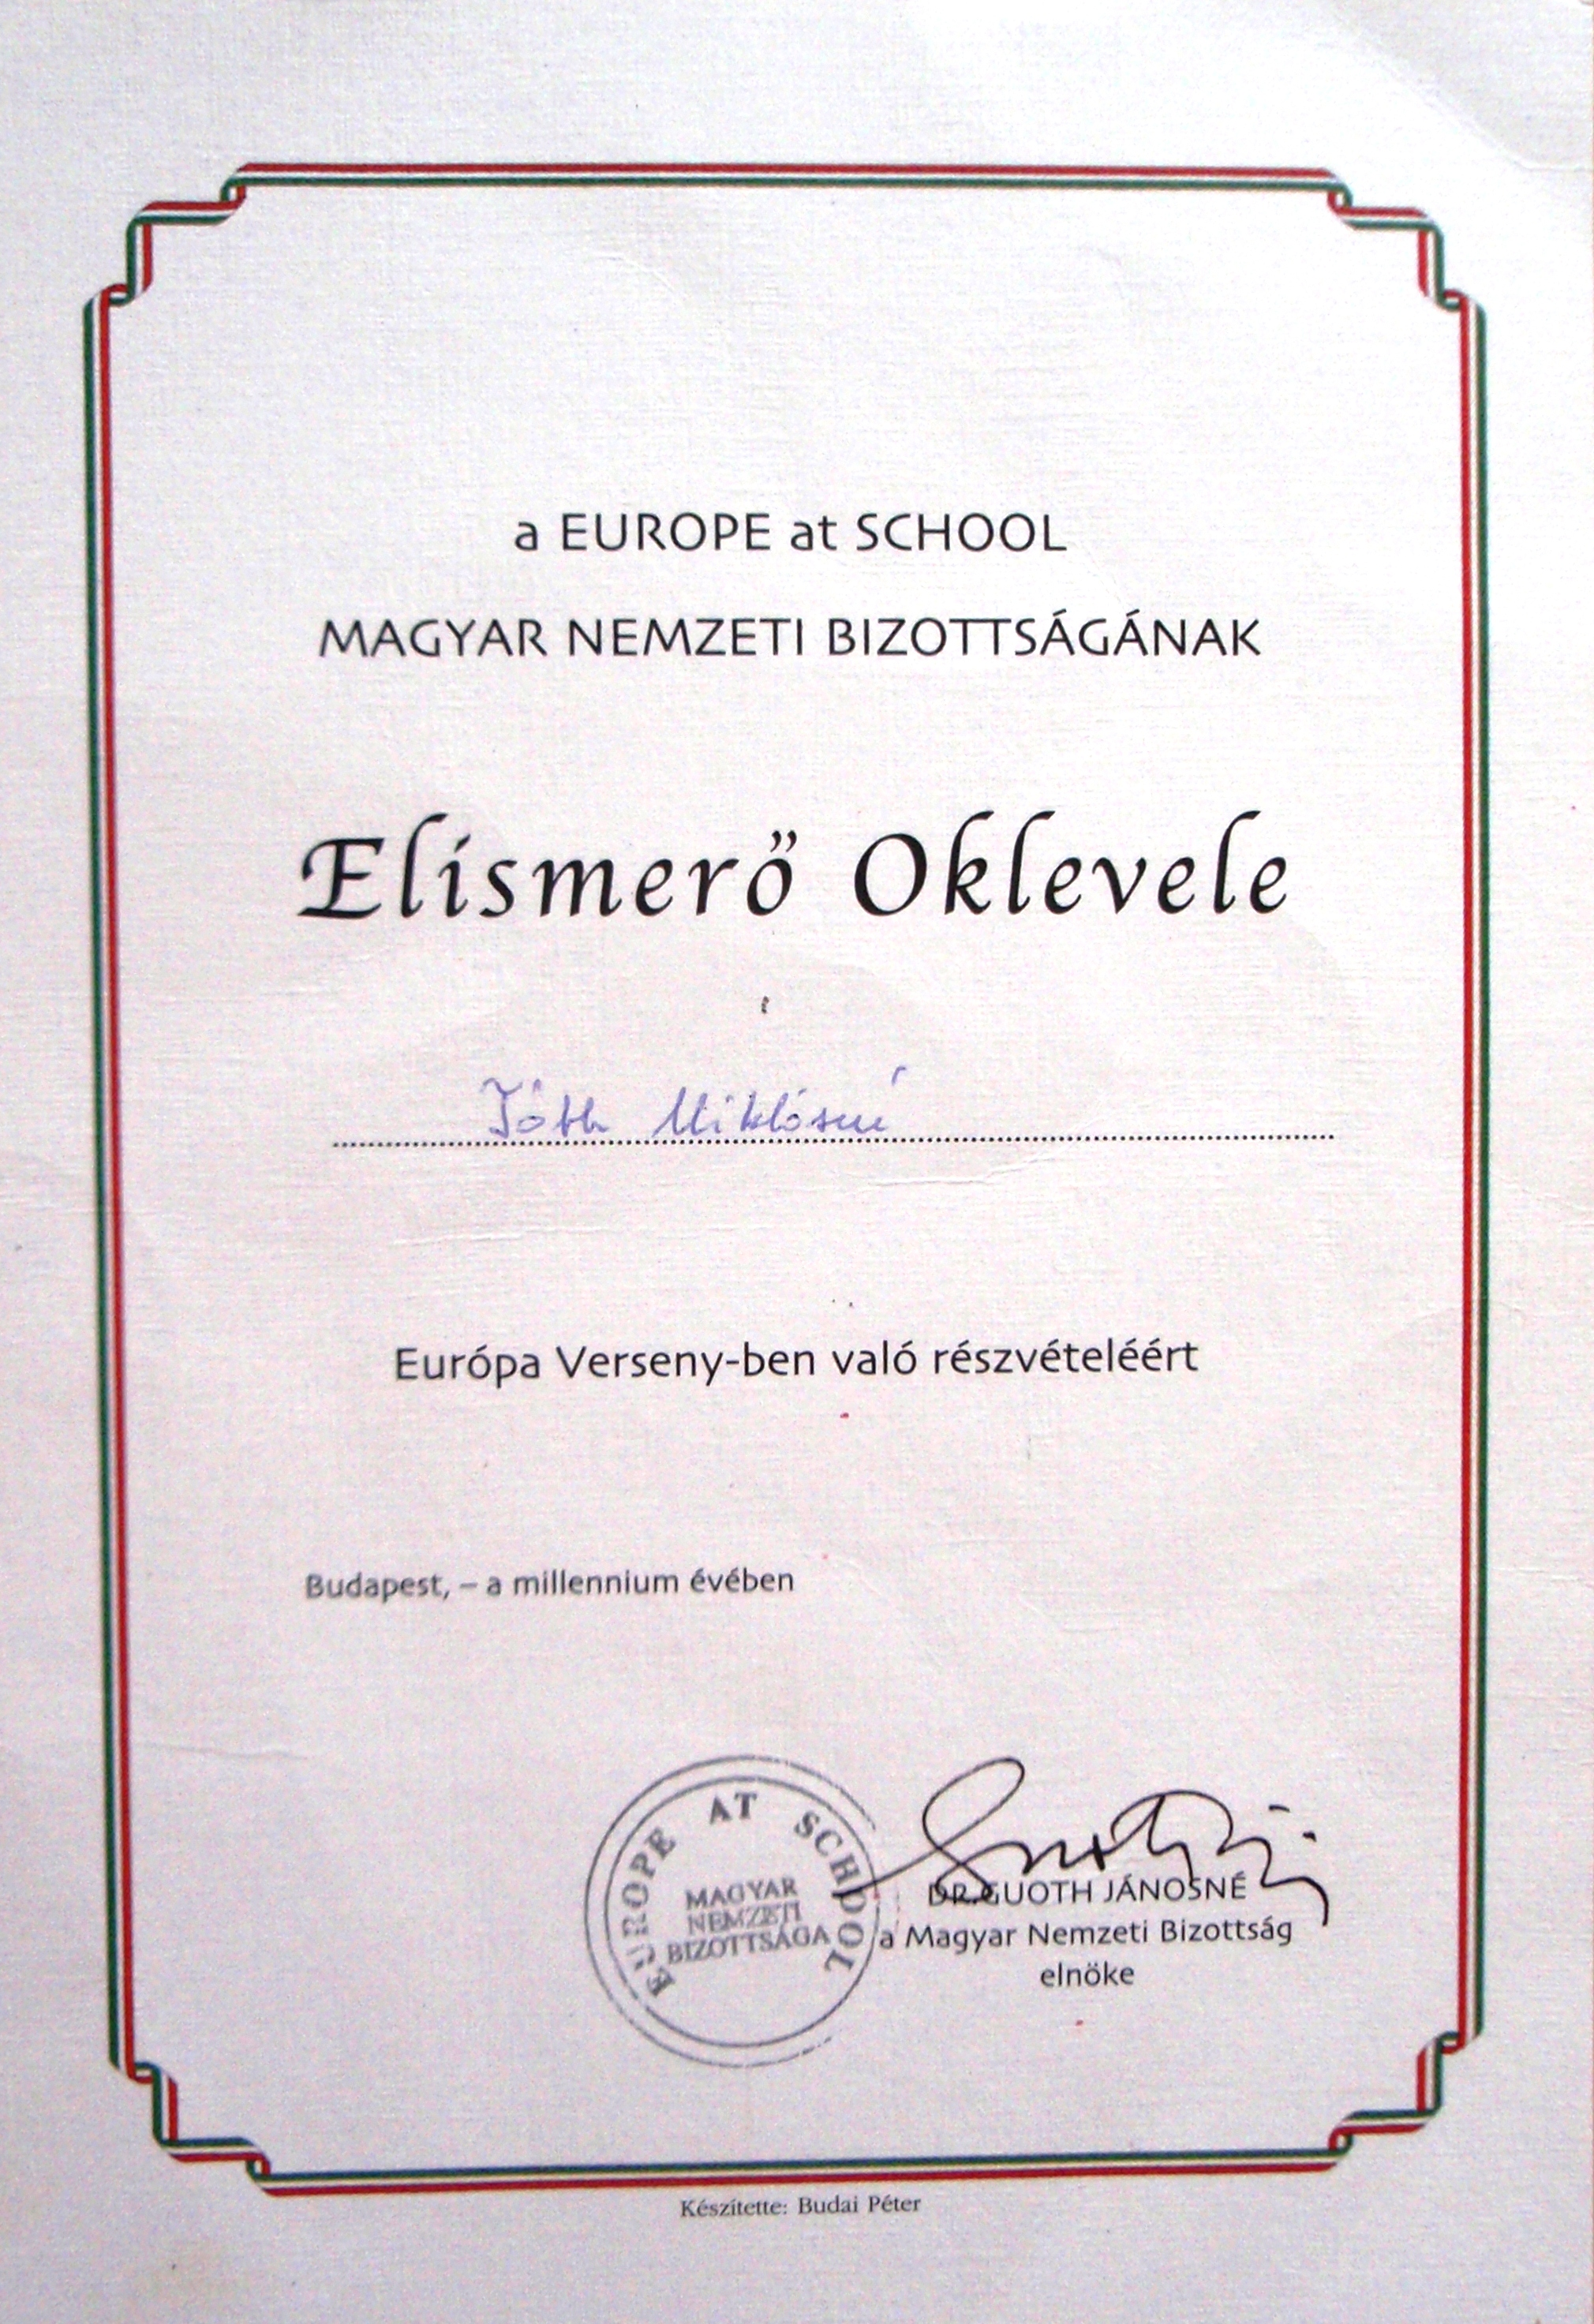 08. Europe At School- Elismerő Oklevél